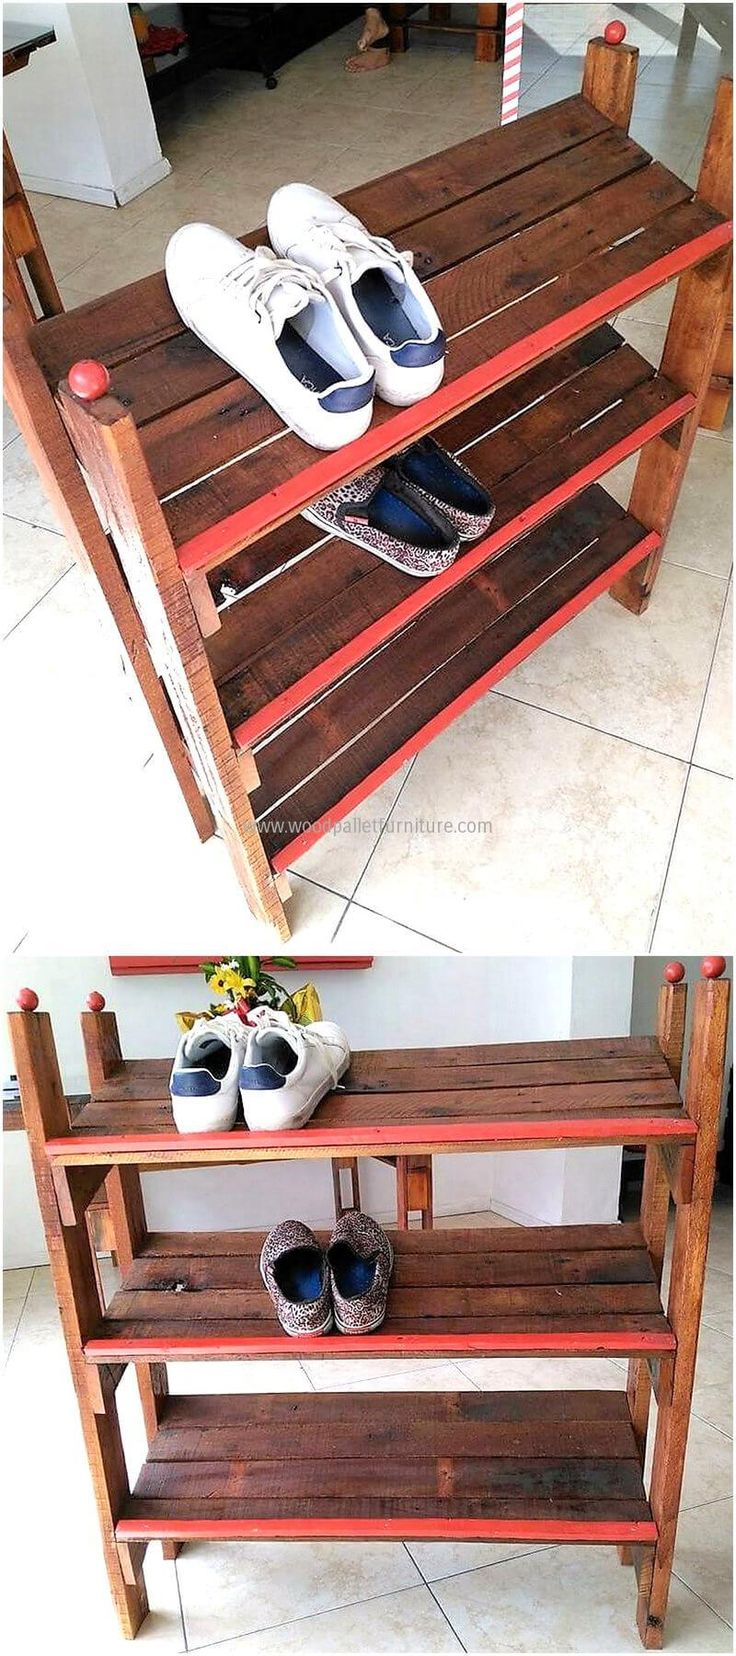 shoe rack ideas best 20 shoe racks ideas on 31651